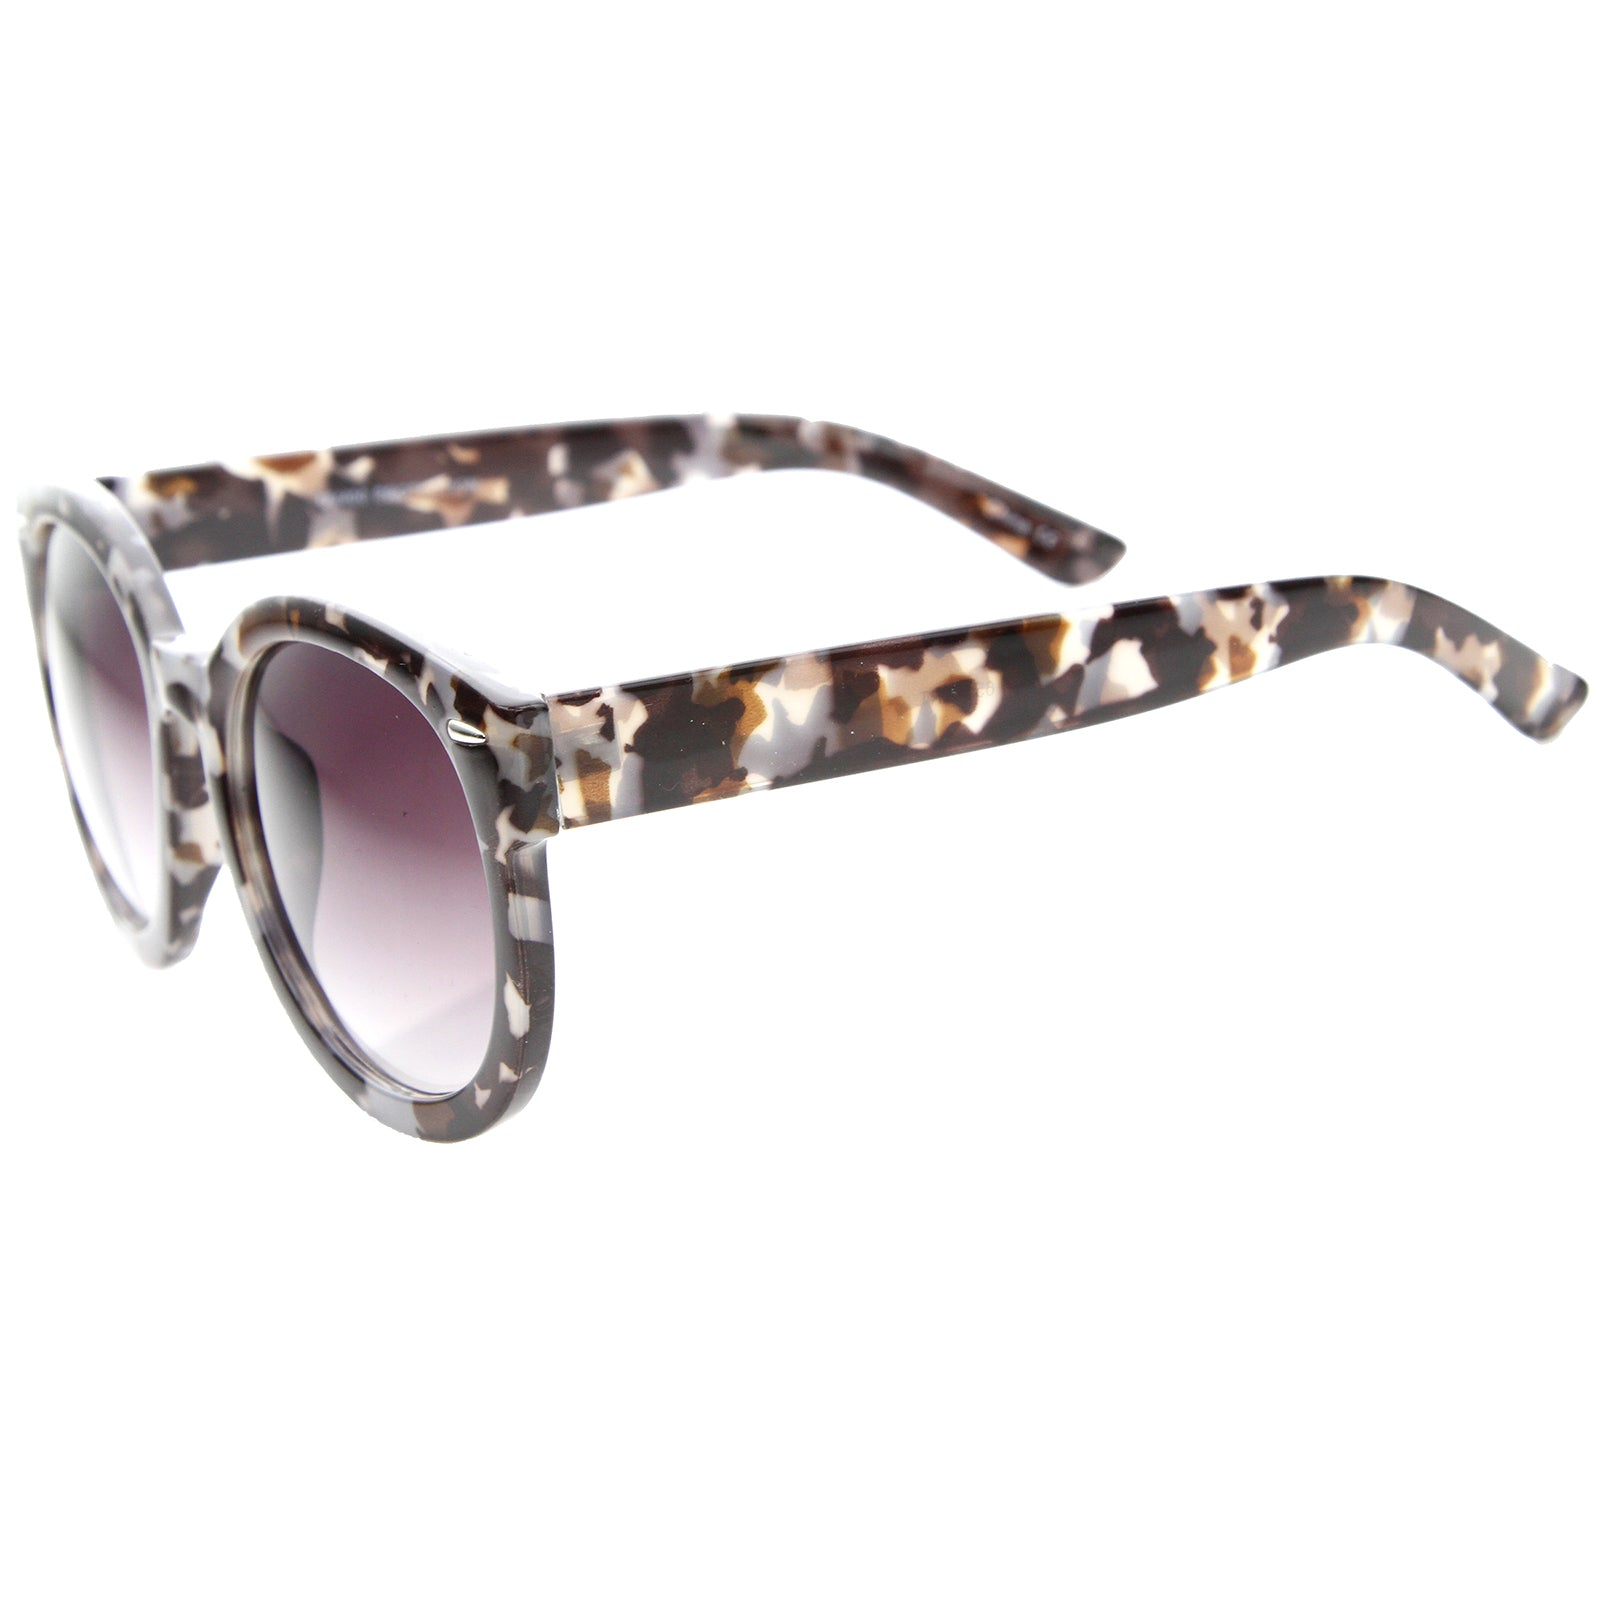 Womens Oversized Sunglasses With UV400 Protected Composite Lens - sunglass.la - 3